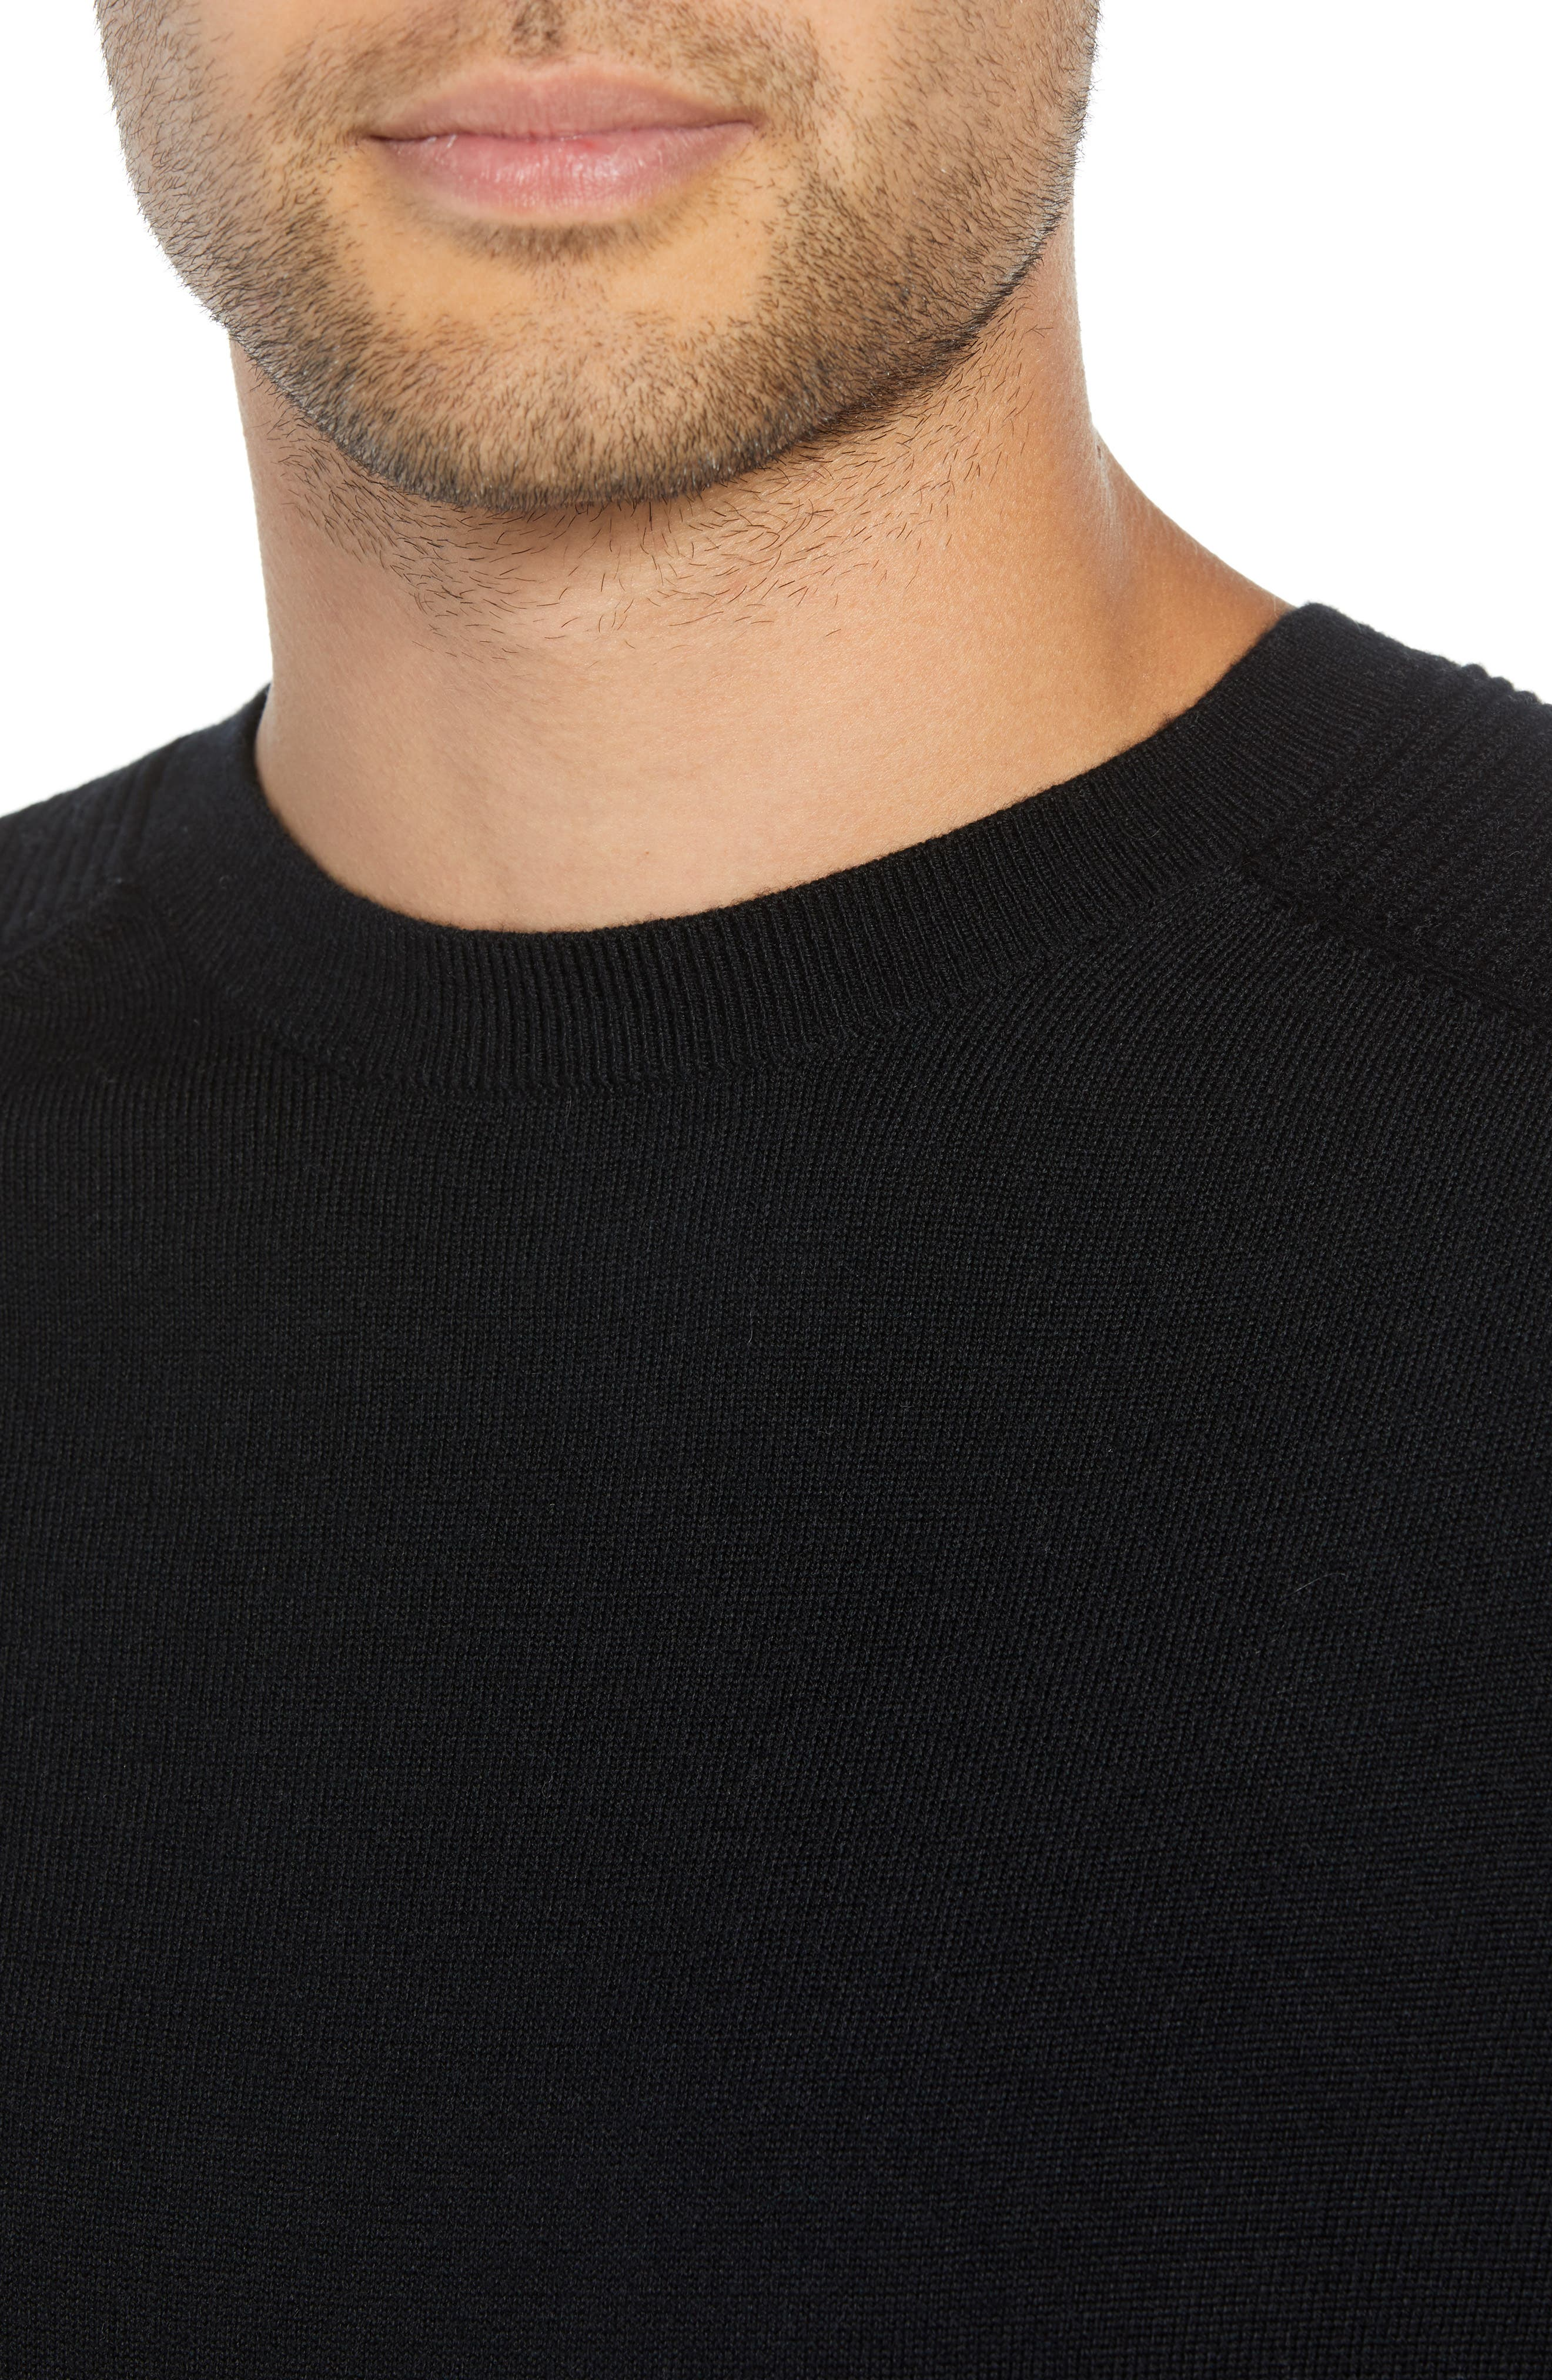 Regular Fit Ottoman Stitch Wool Sweater,                             Alternate thumbnail 4, color,                             BLACK